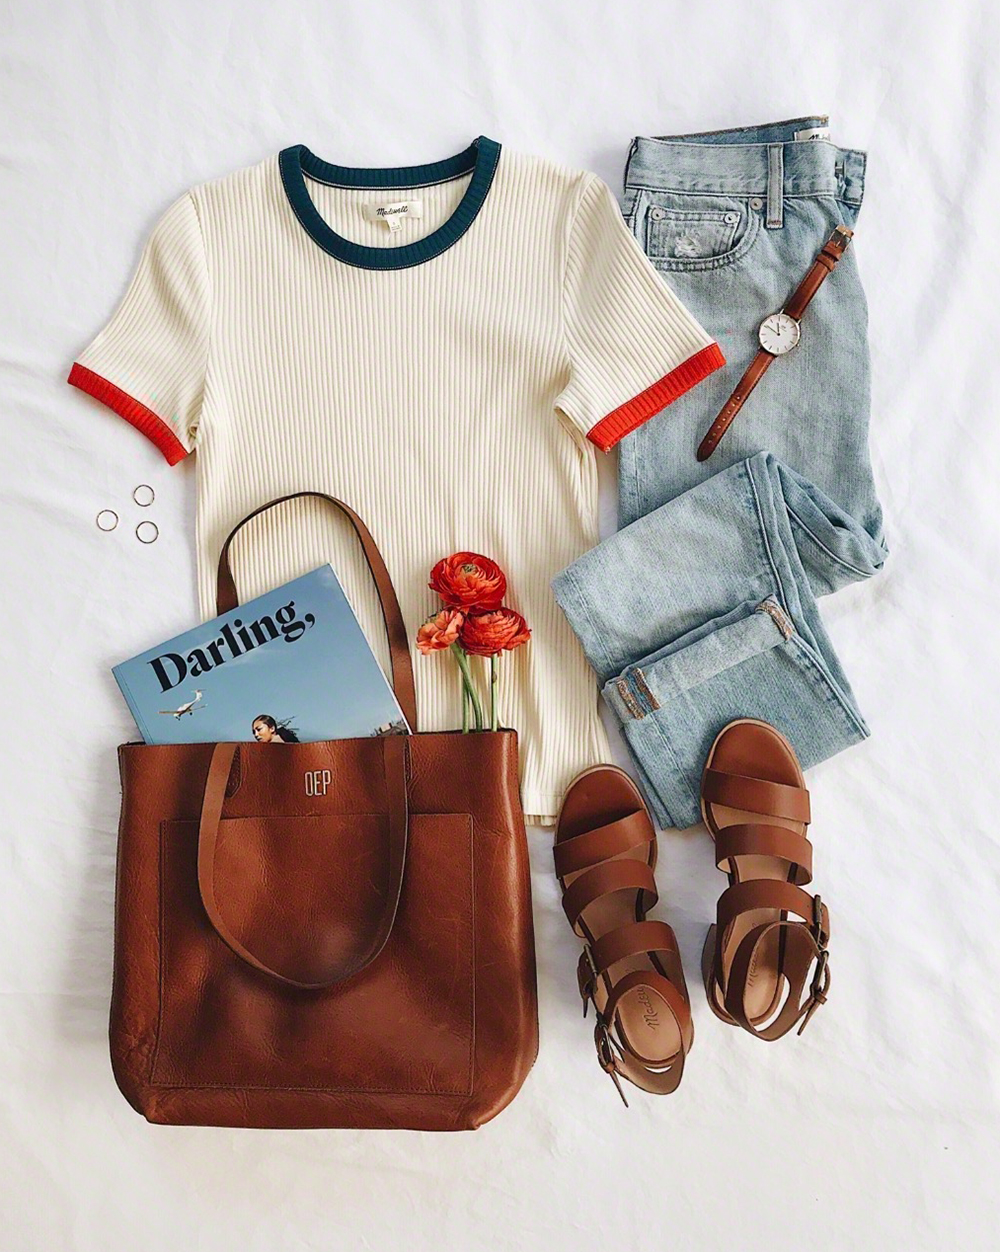 livvyland-blog-darling-magazine-madewell-medium-transport-monogram-tote-bag-color-block-tee-outfit-idea-inspiration